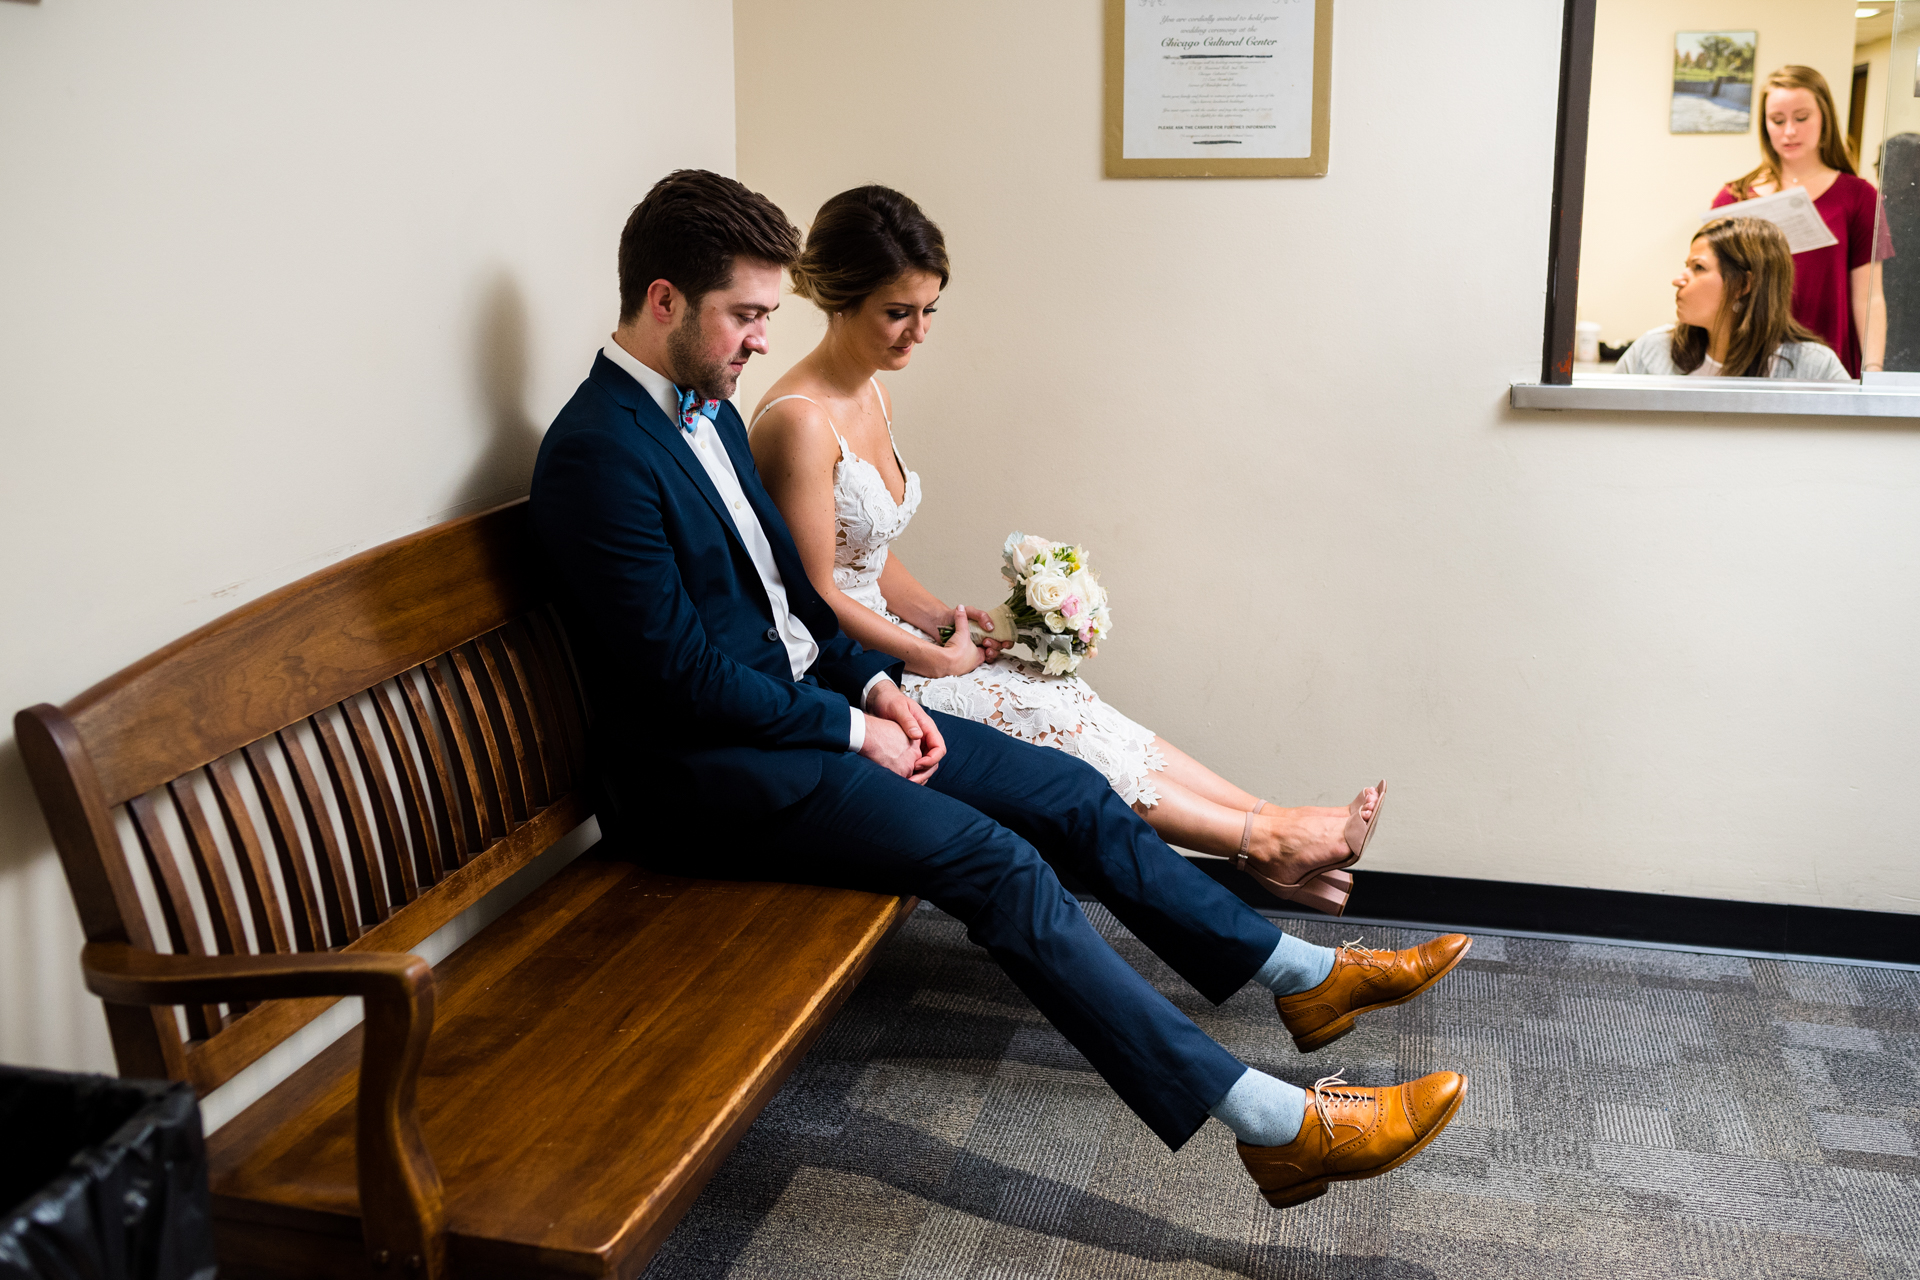 Candice C. Cusic of Illinois photographed this bride and groom enjoy a quiet moment after their civil wedding ceremony